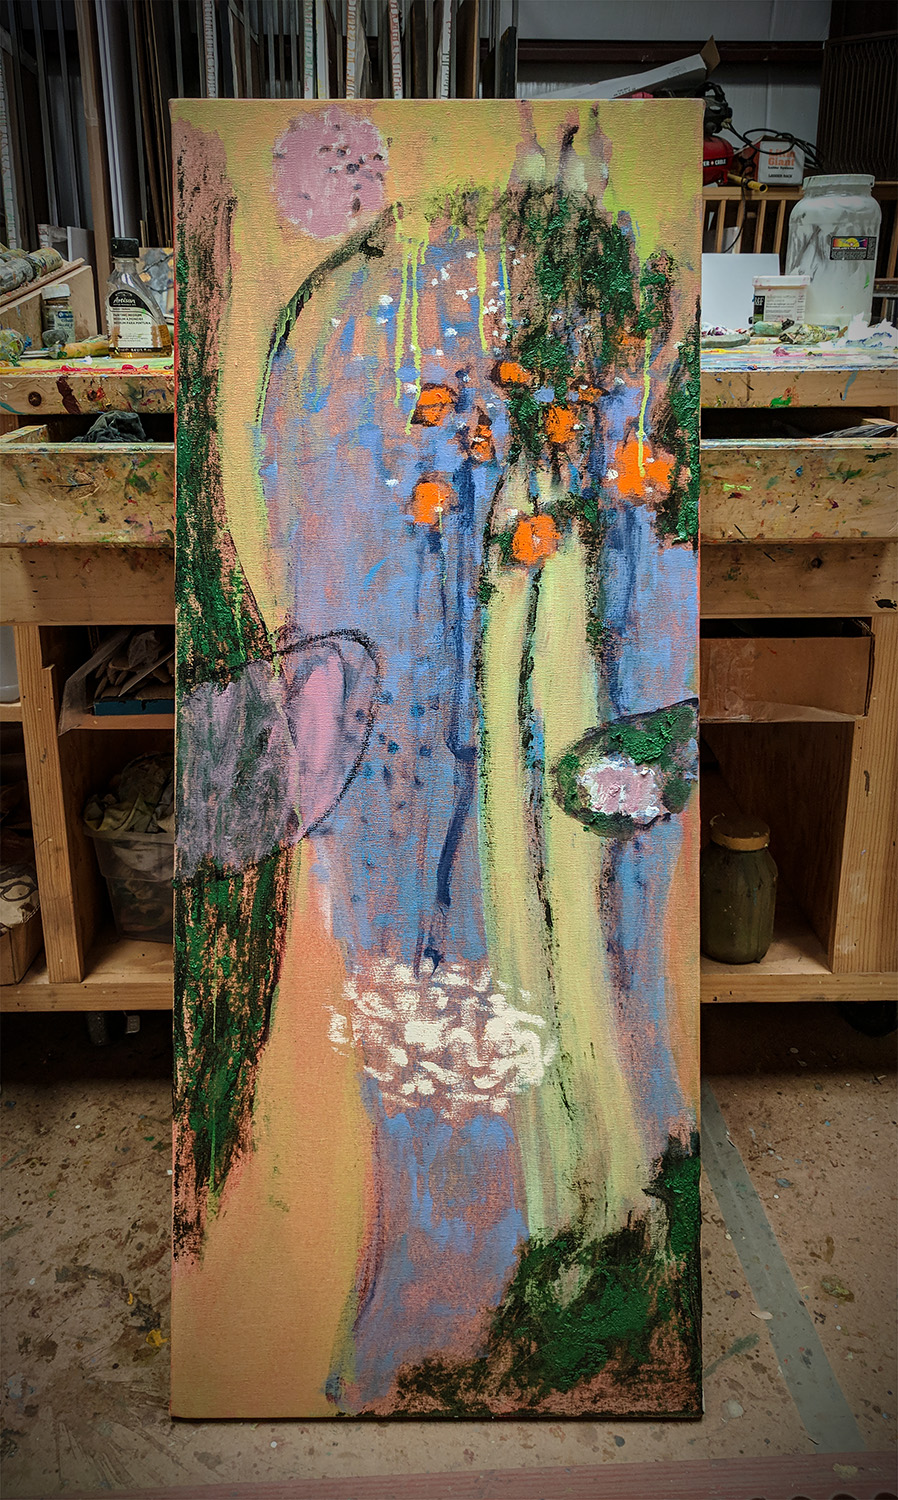 "48 x 19"" oil on canvas in progress in Santa Fe, NM"